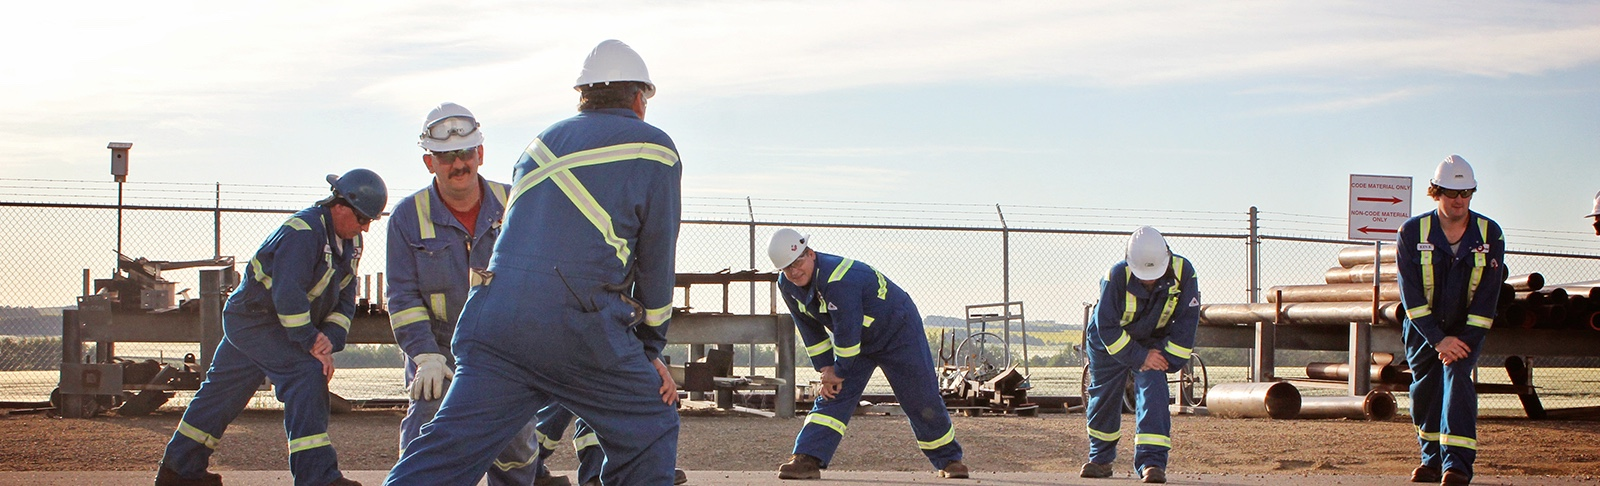 Quinn Contracting Needs General Labourer, QC Inspectors, Material Handlers, & More – Apply Now!